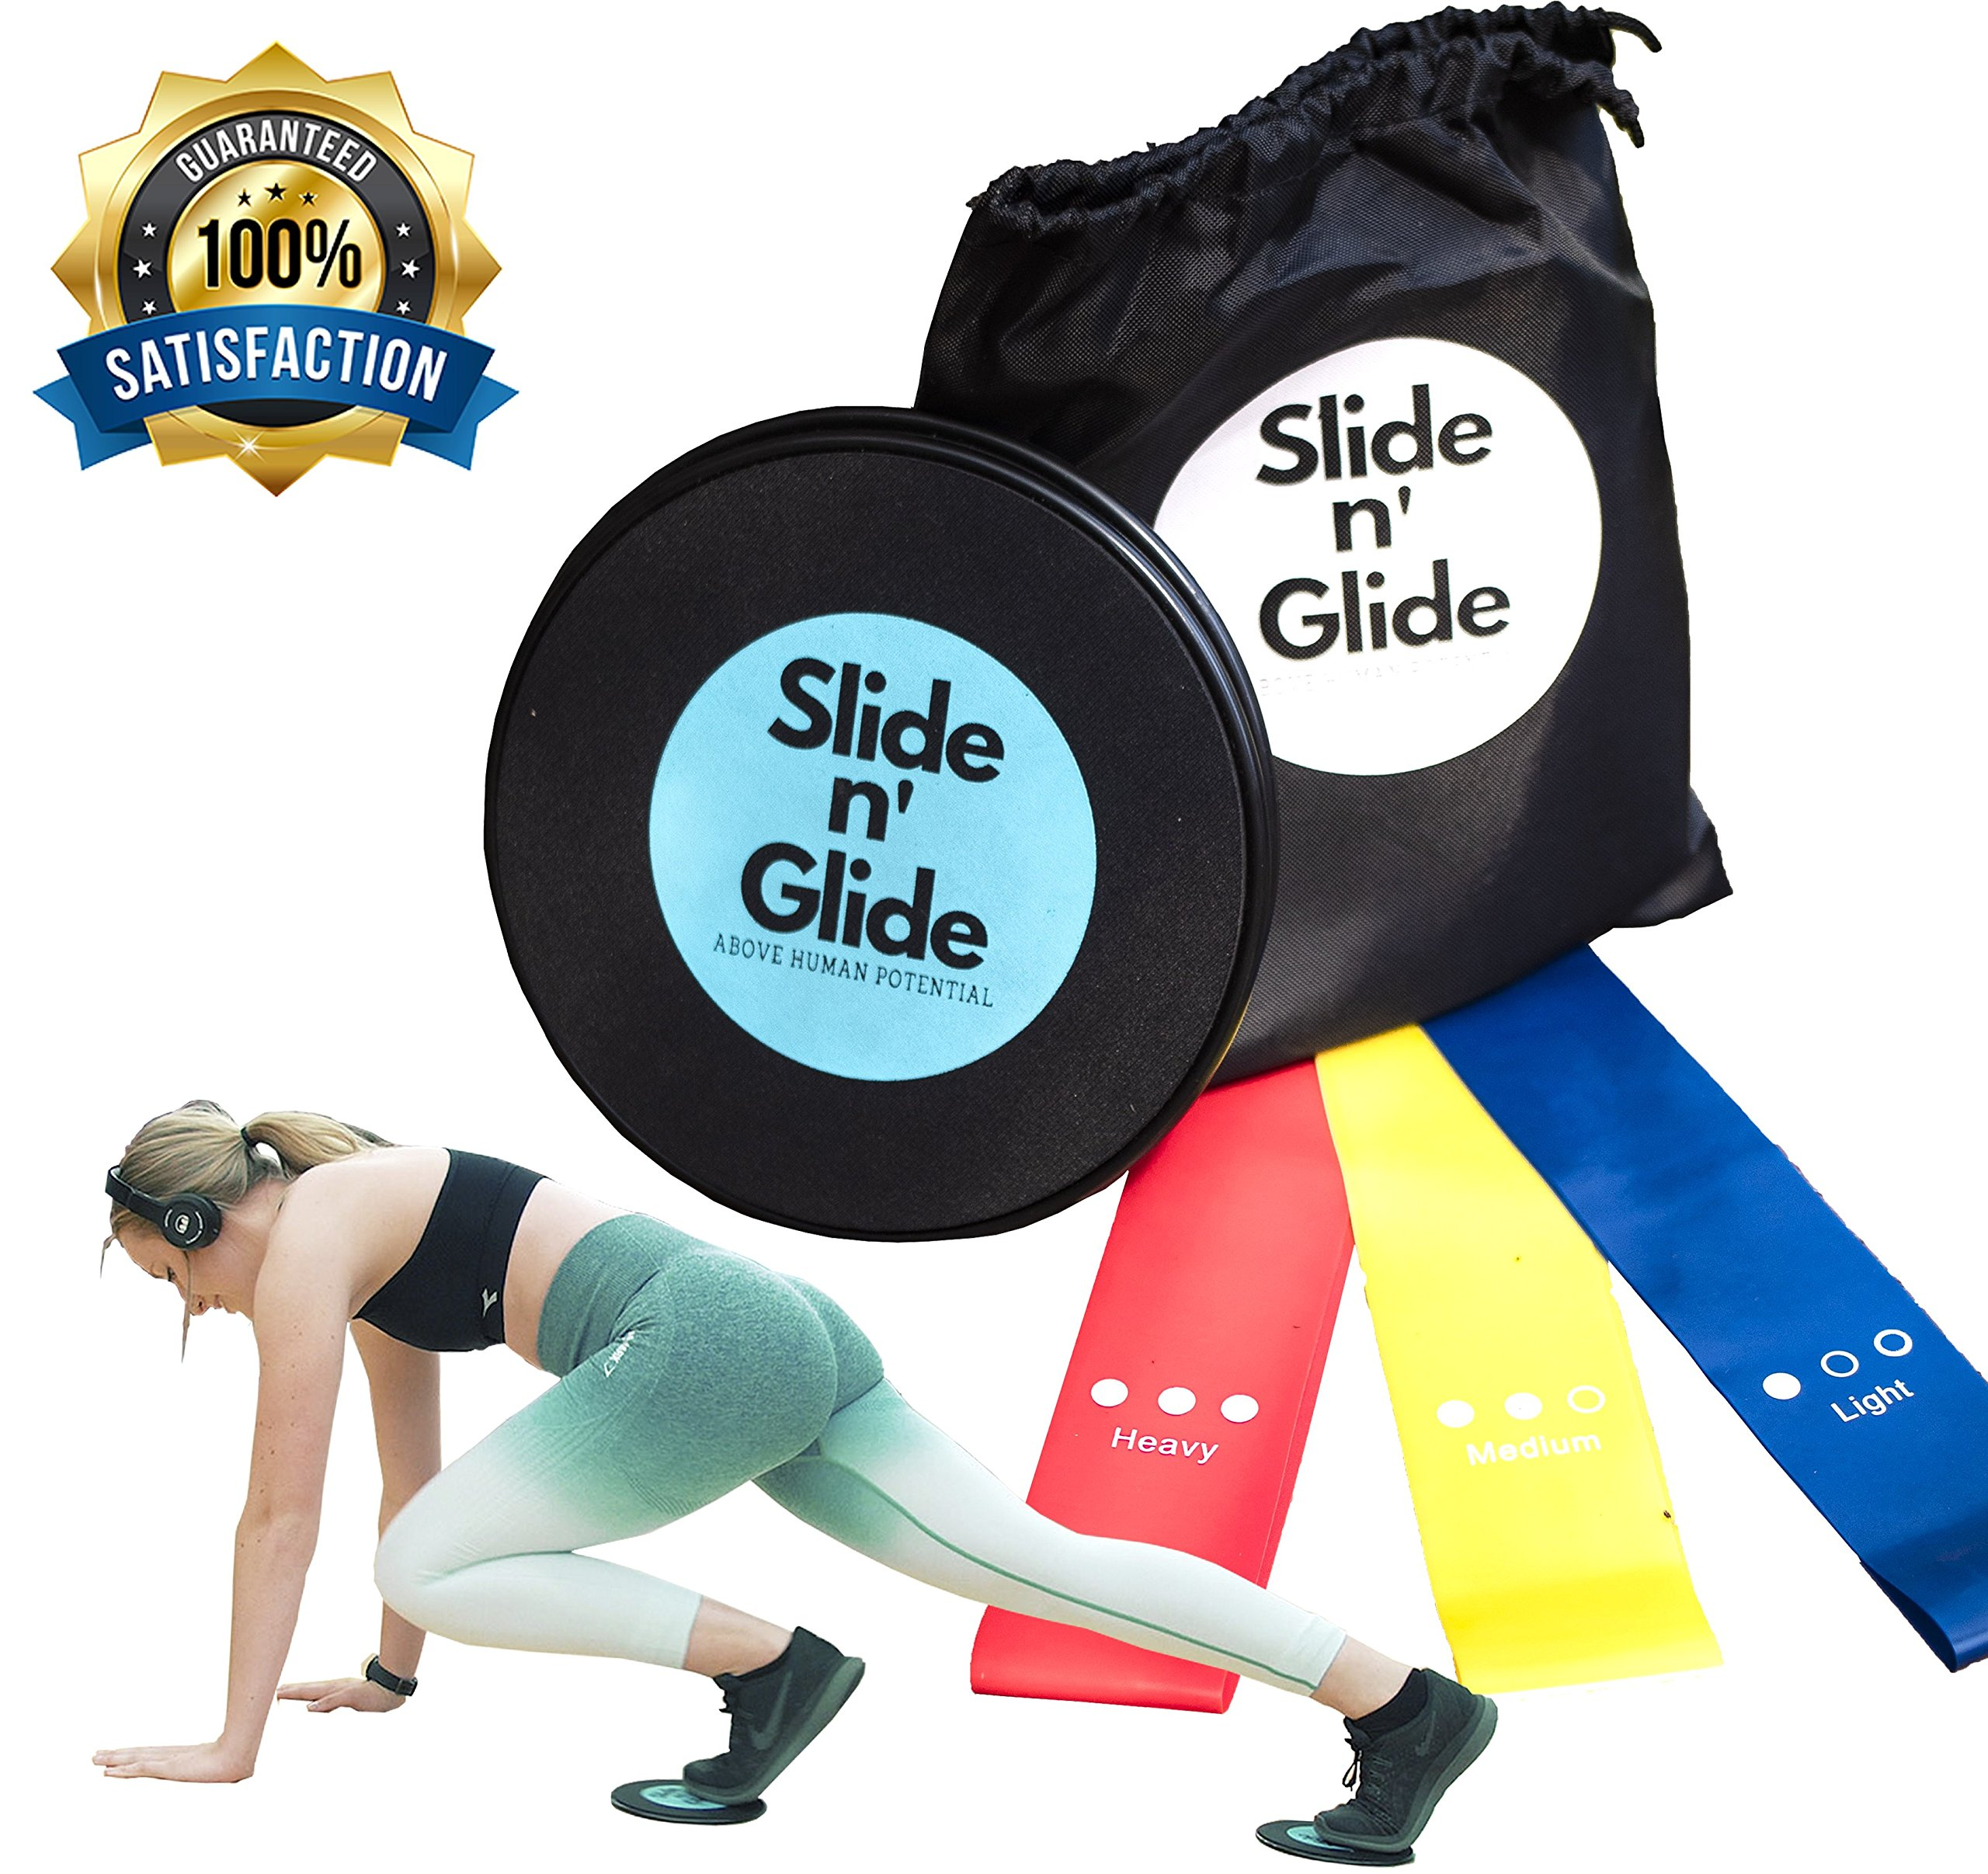 Gliding Discs and Resistance Bands, Core Sliders and 3 Exercise Resistance Loop Bands, Sliding Discs and Core Exercise Equipment for Intense, Low-Impact Exercises to Strengthen Core, Glutes, and Abs